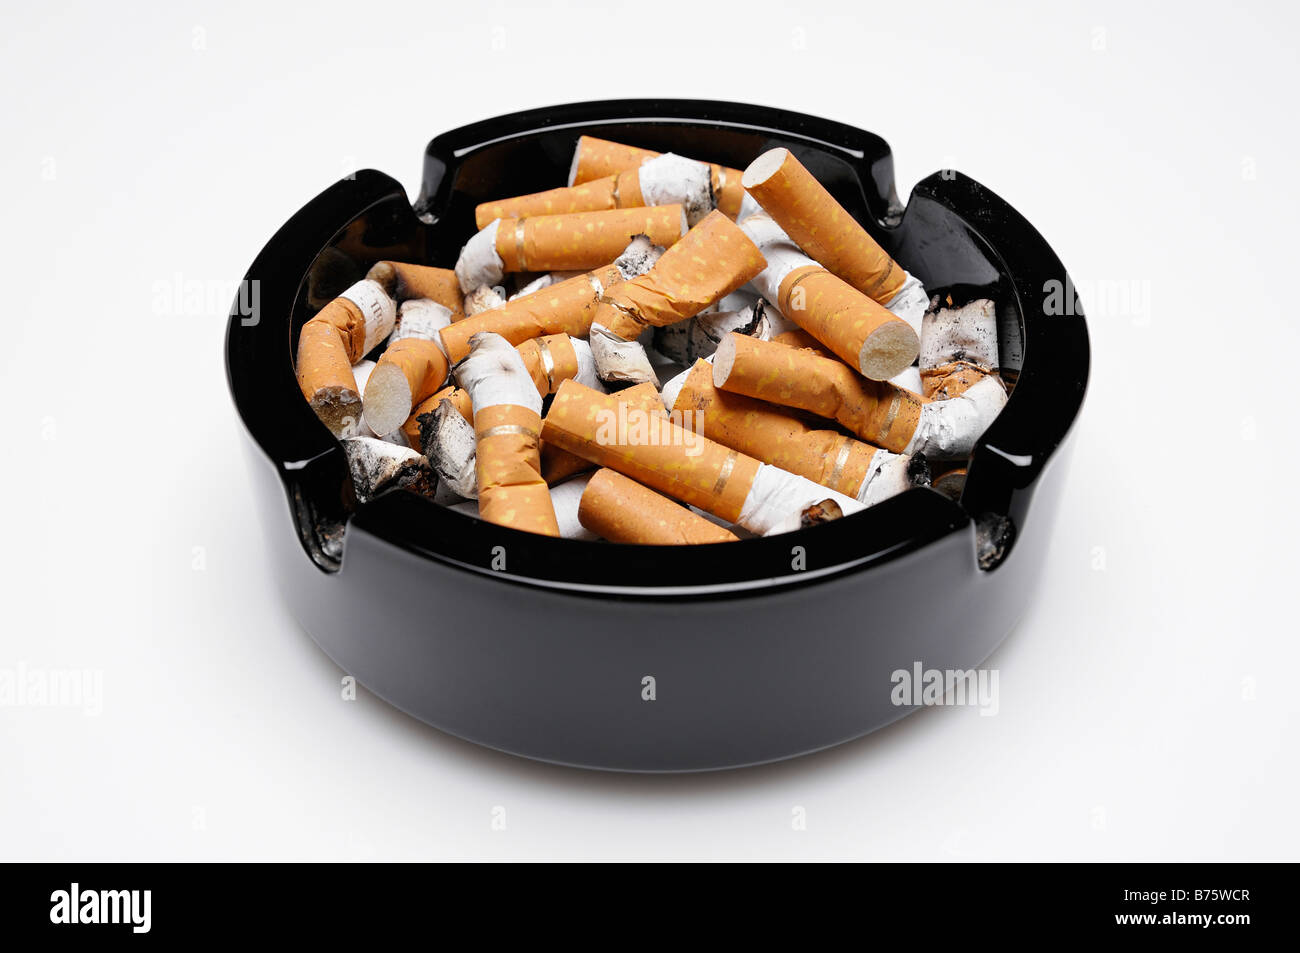 Ashtray Full of Cigarette Ends Close Up - Stock Image